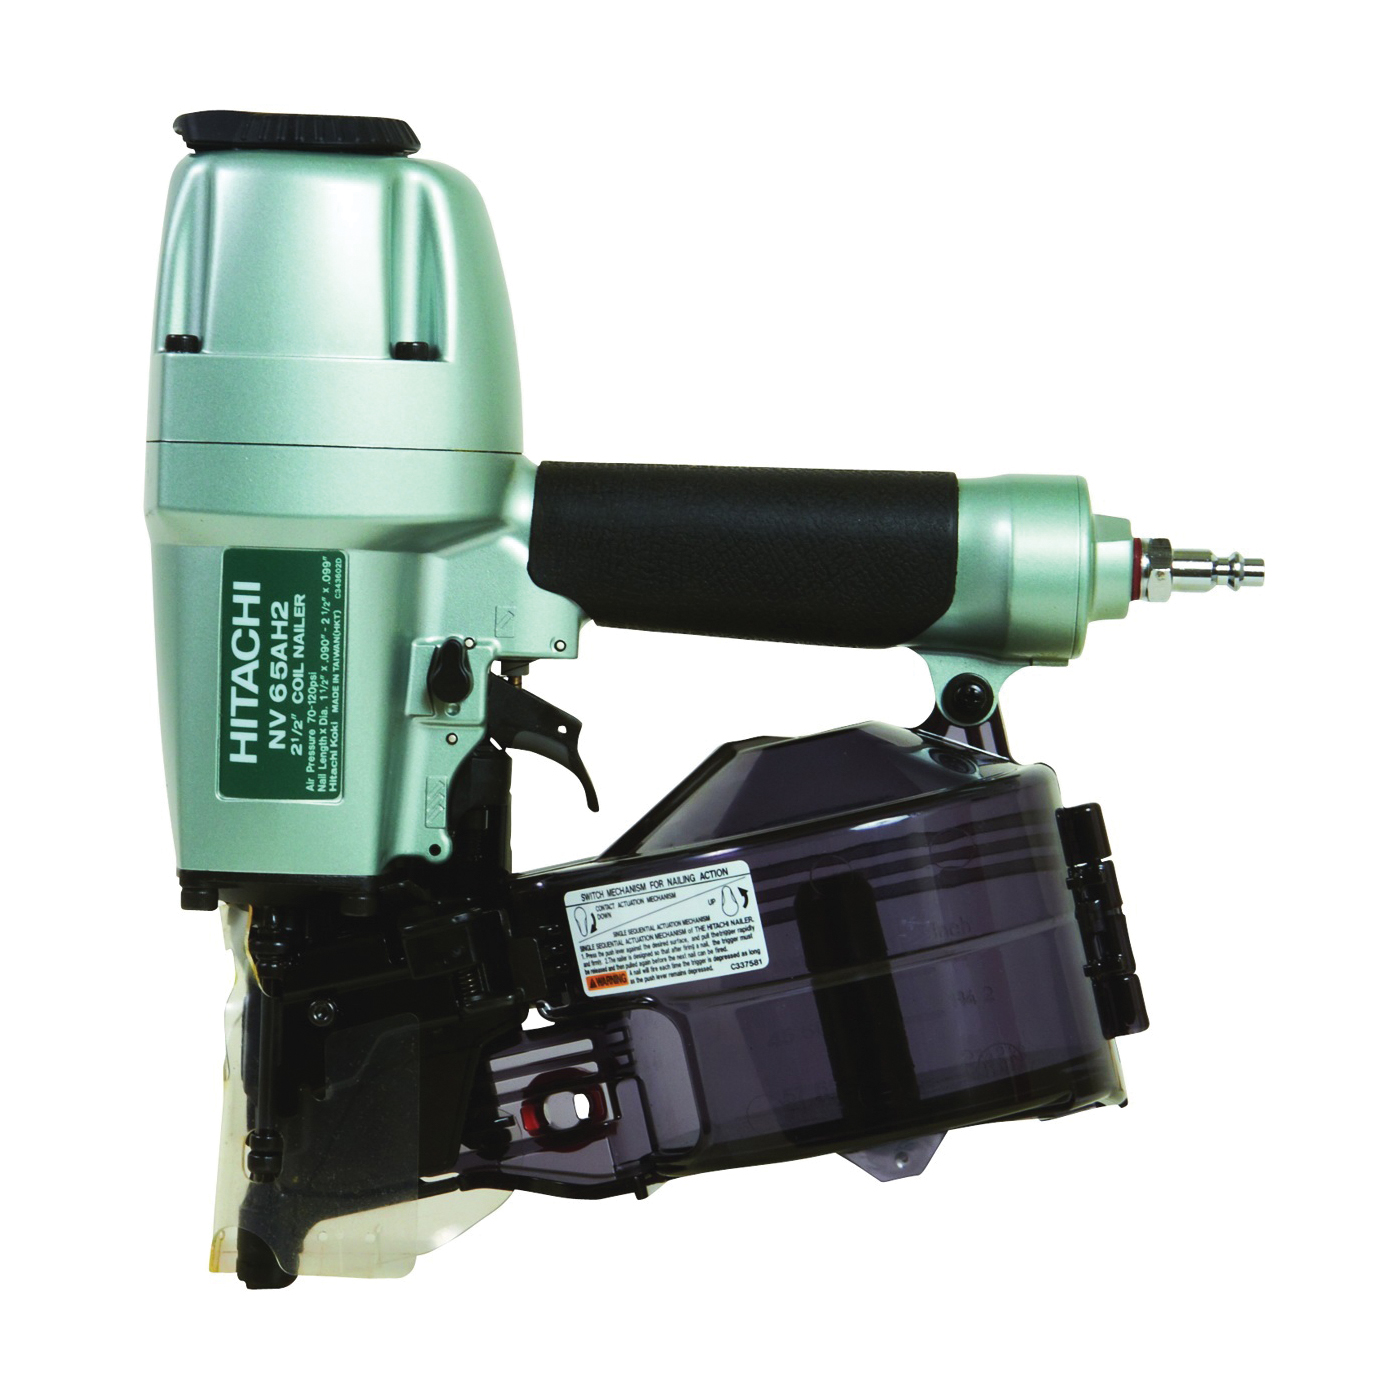 Picture of METABO NV65AH2 Siding Nailer, 200 to 300 Magazine, 15 deg Plastic, 16 deg Wire Collation, Wire Weld Collation